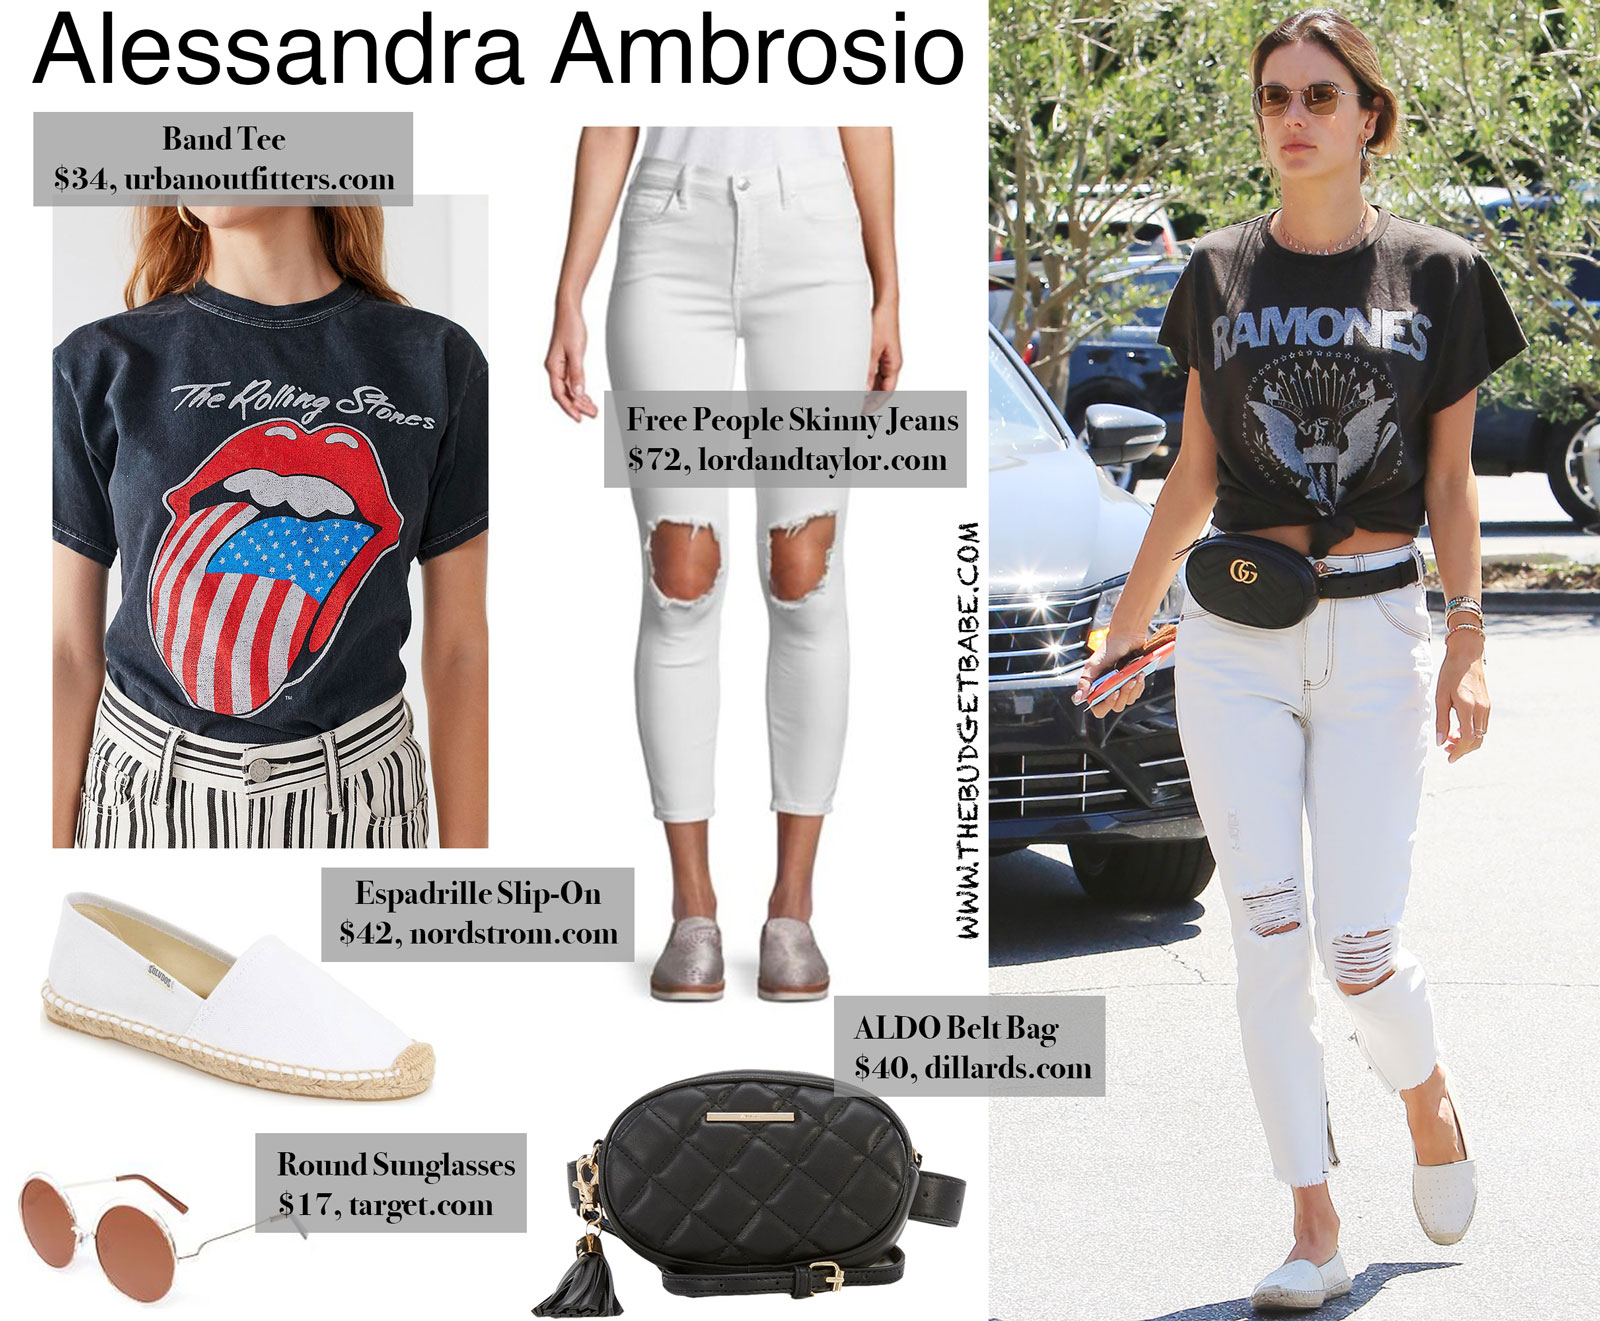 Alessandra Ambrosio Gucci Belt Bag Look for Less